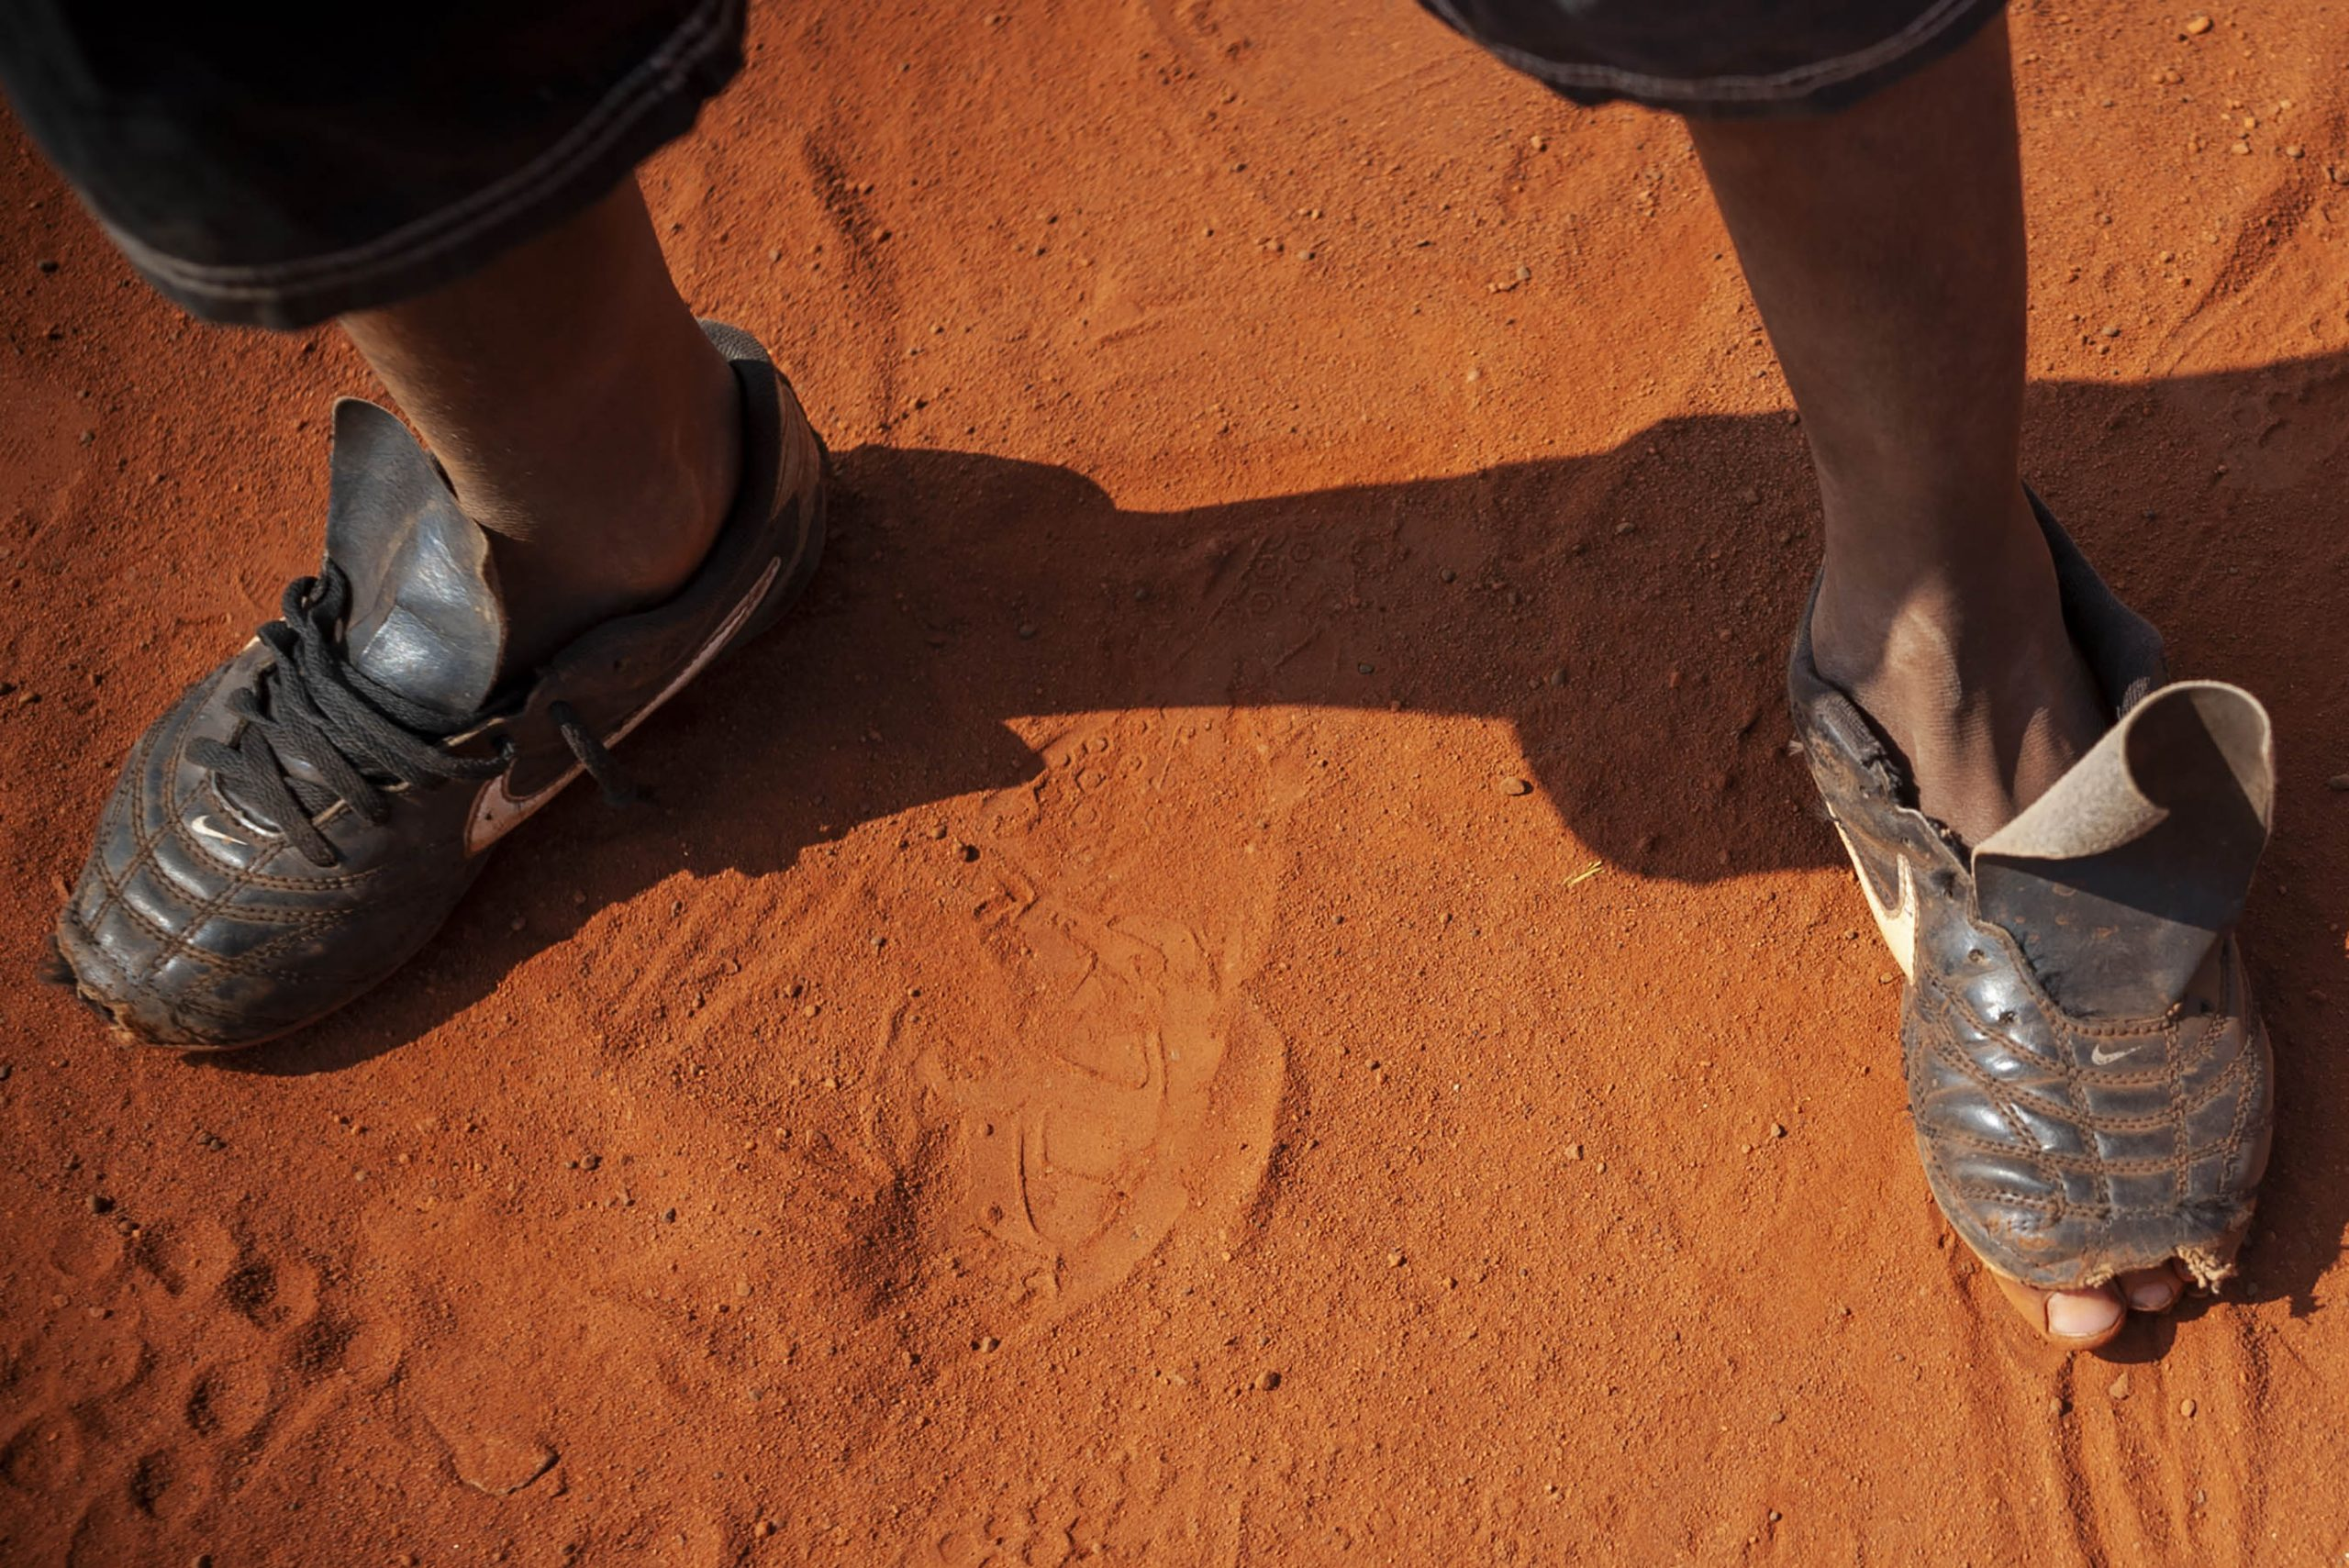 7 May 2014: A young Sowetan footballer's toes peek out from his worn football boots as he takes a break during an informal game on a dusty football pitch in Dobsonville, Soweto. (Photograph by Ihsaan Haffejee)